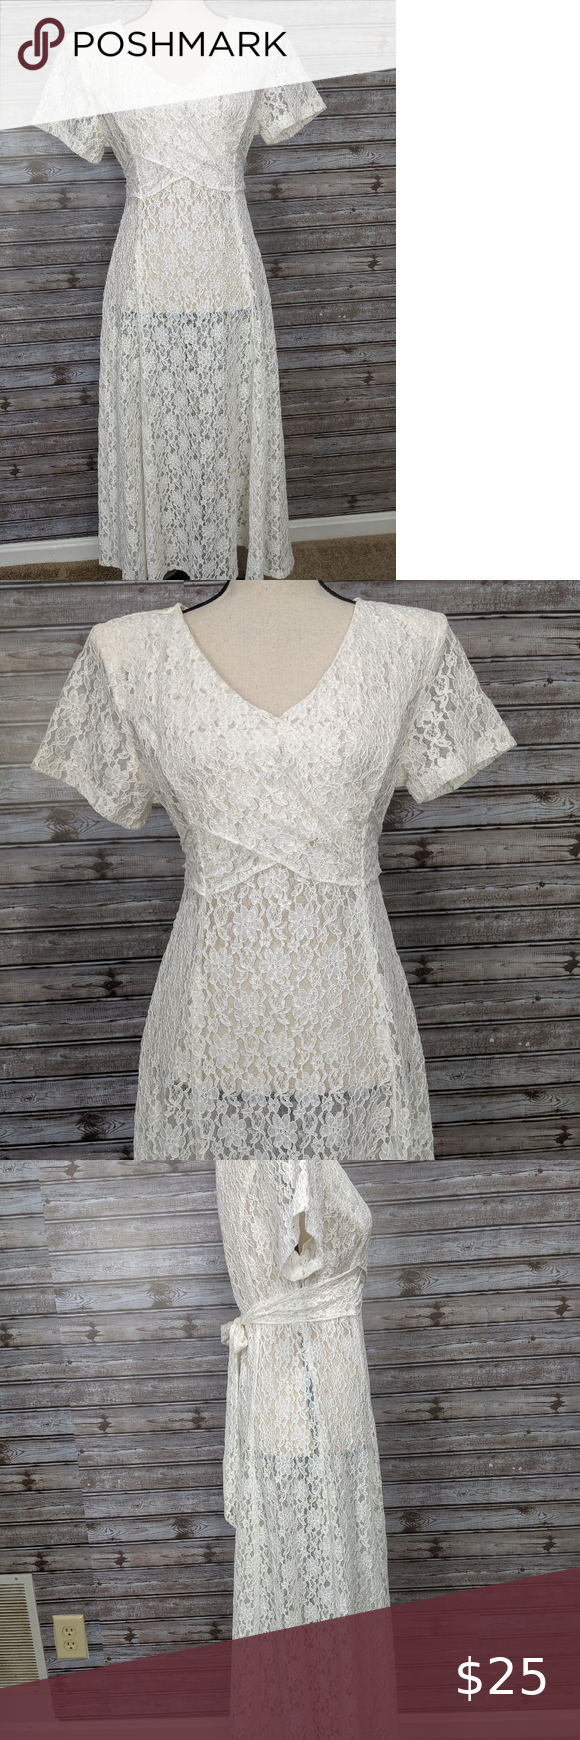 Vintage Lace Dress Beautiful Midi Length Off White Lace Dress Small Shoulder Pads Zips Up The Side And Ti Lace Dress Vintage Off White Lace Dress Lace Dress [ 1740 x 580 Pixel ]